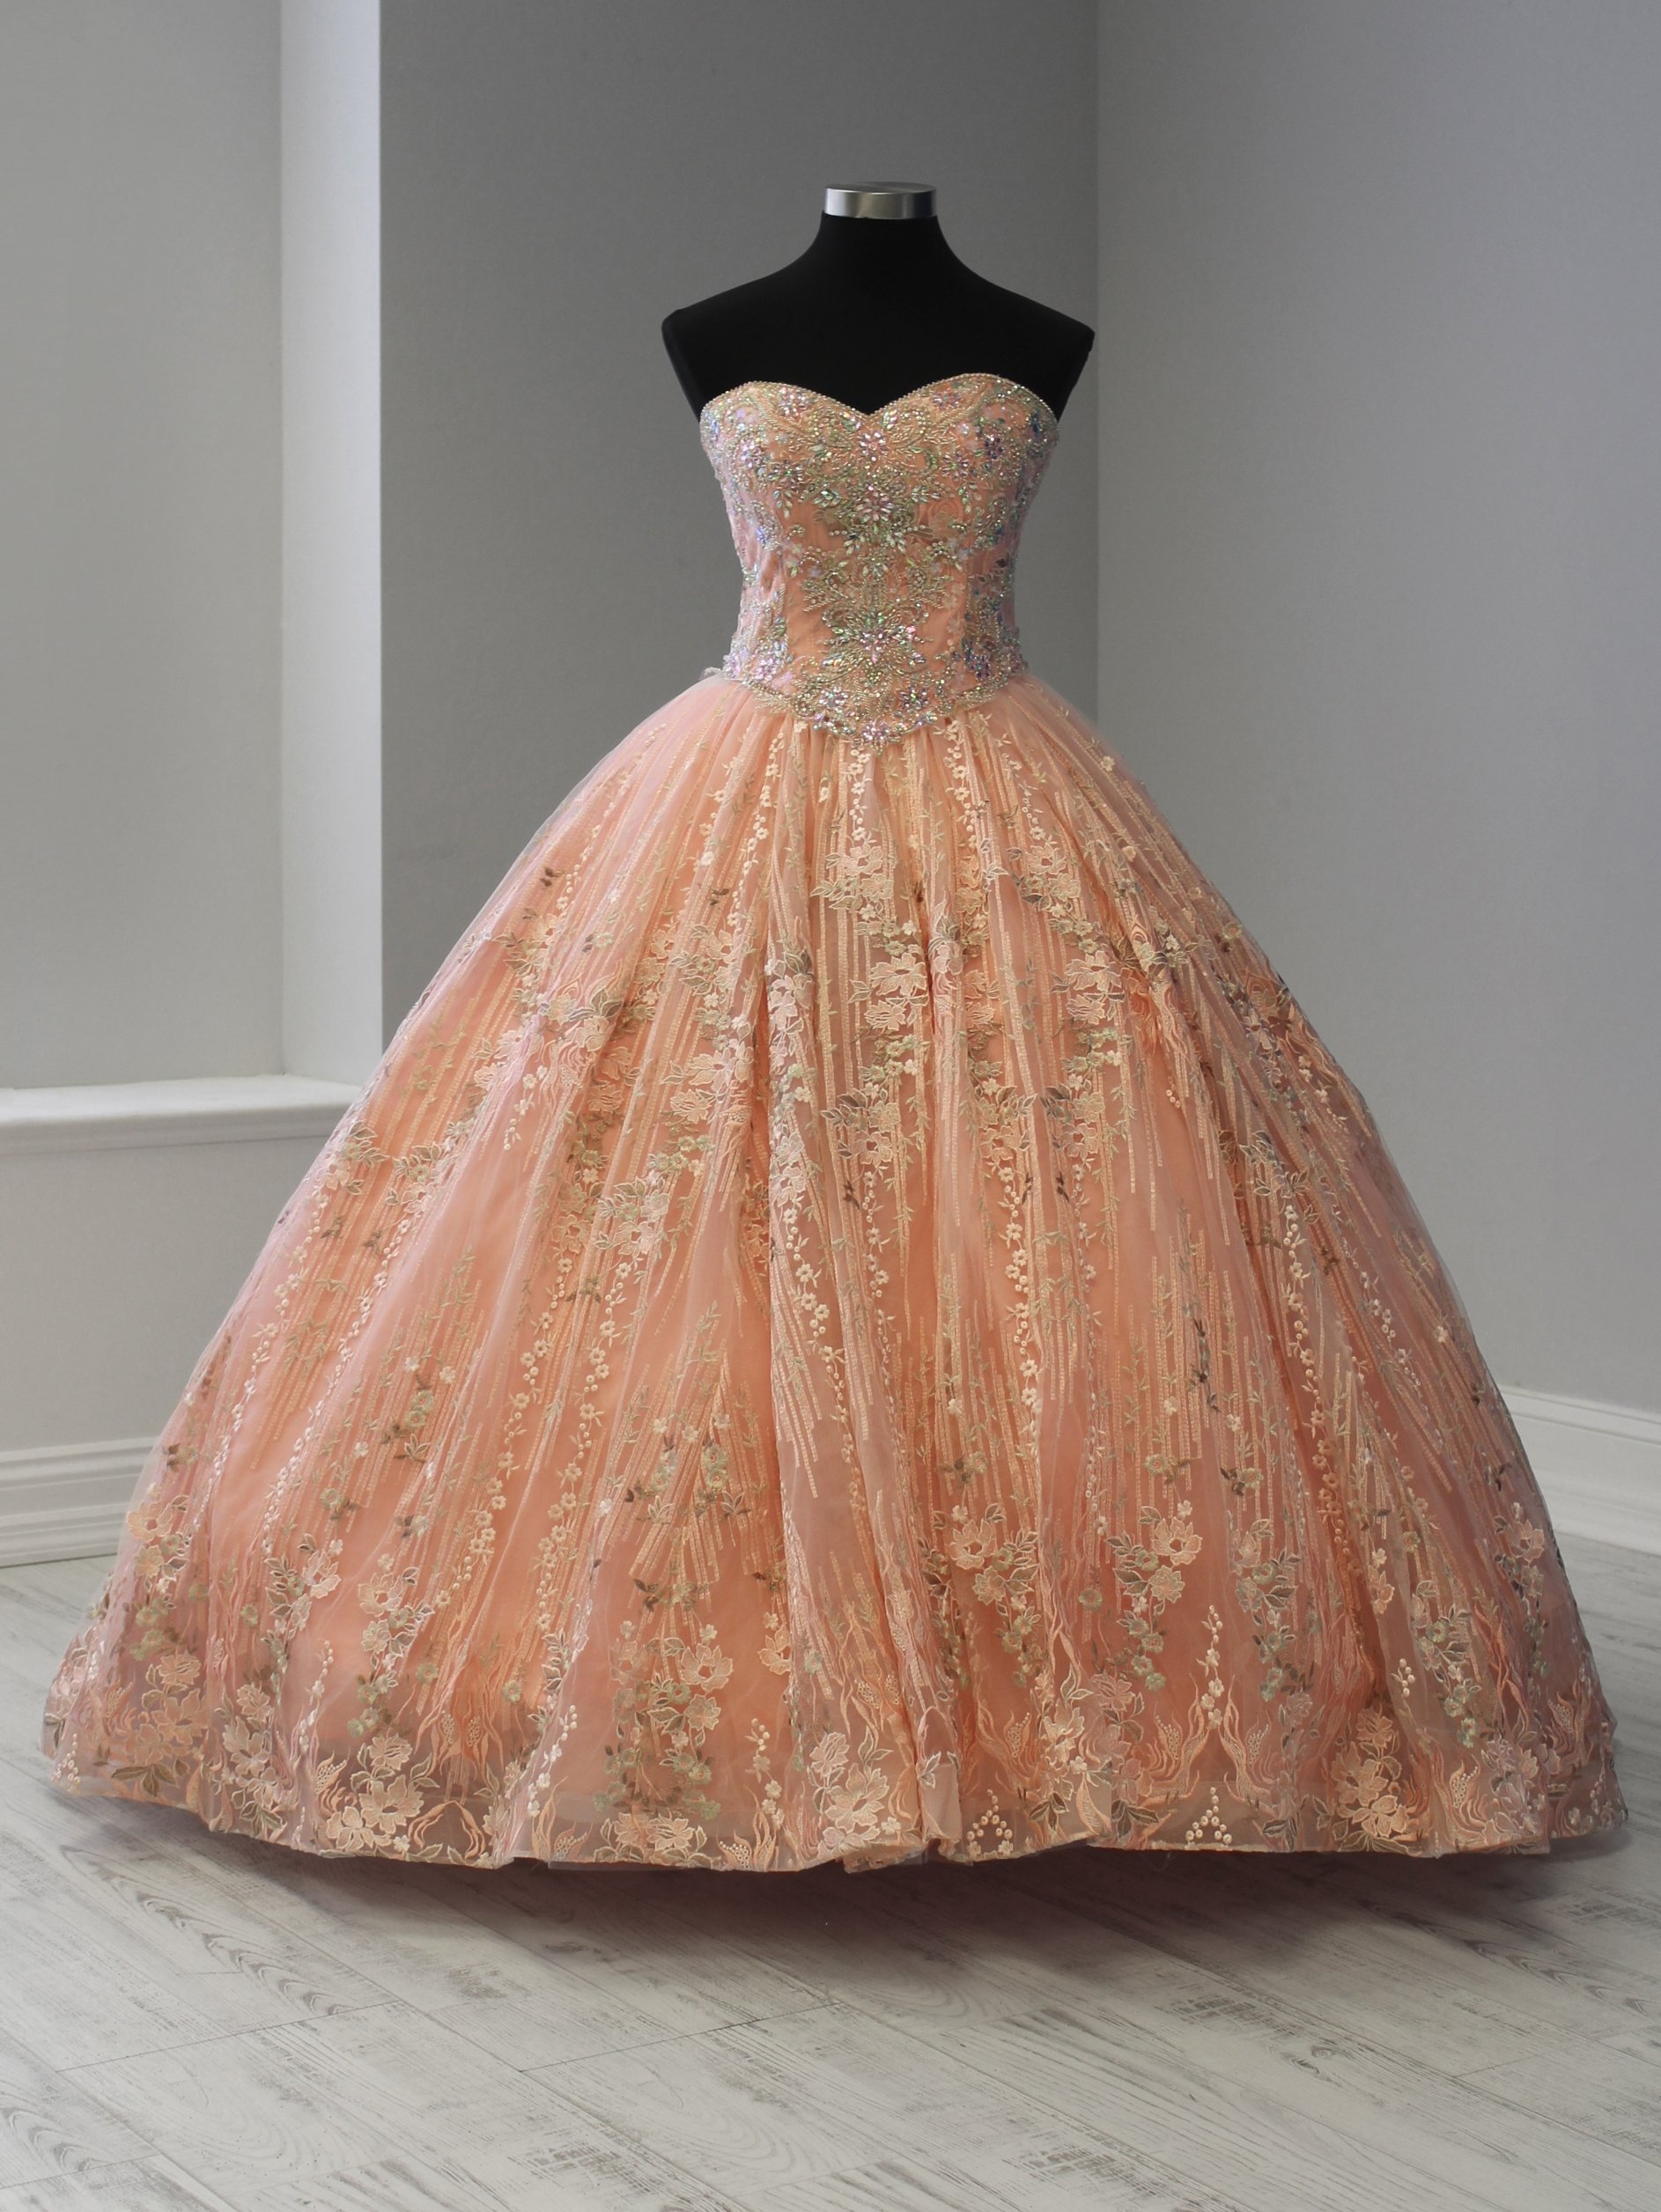 8a2e6d7a3b0 Two-Piece Quinceanera Dress with Short Skirt by House of Wu 26920 in ...